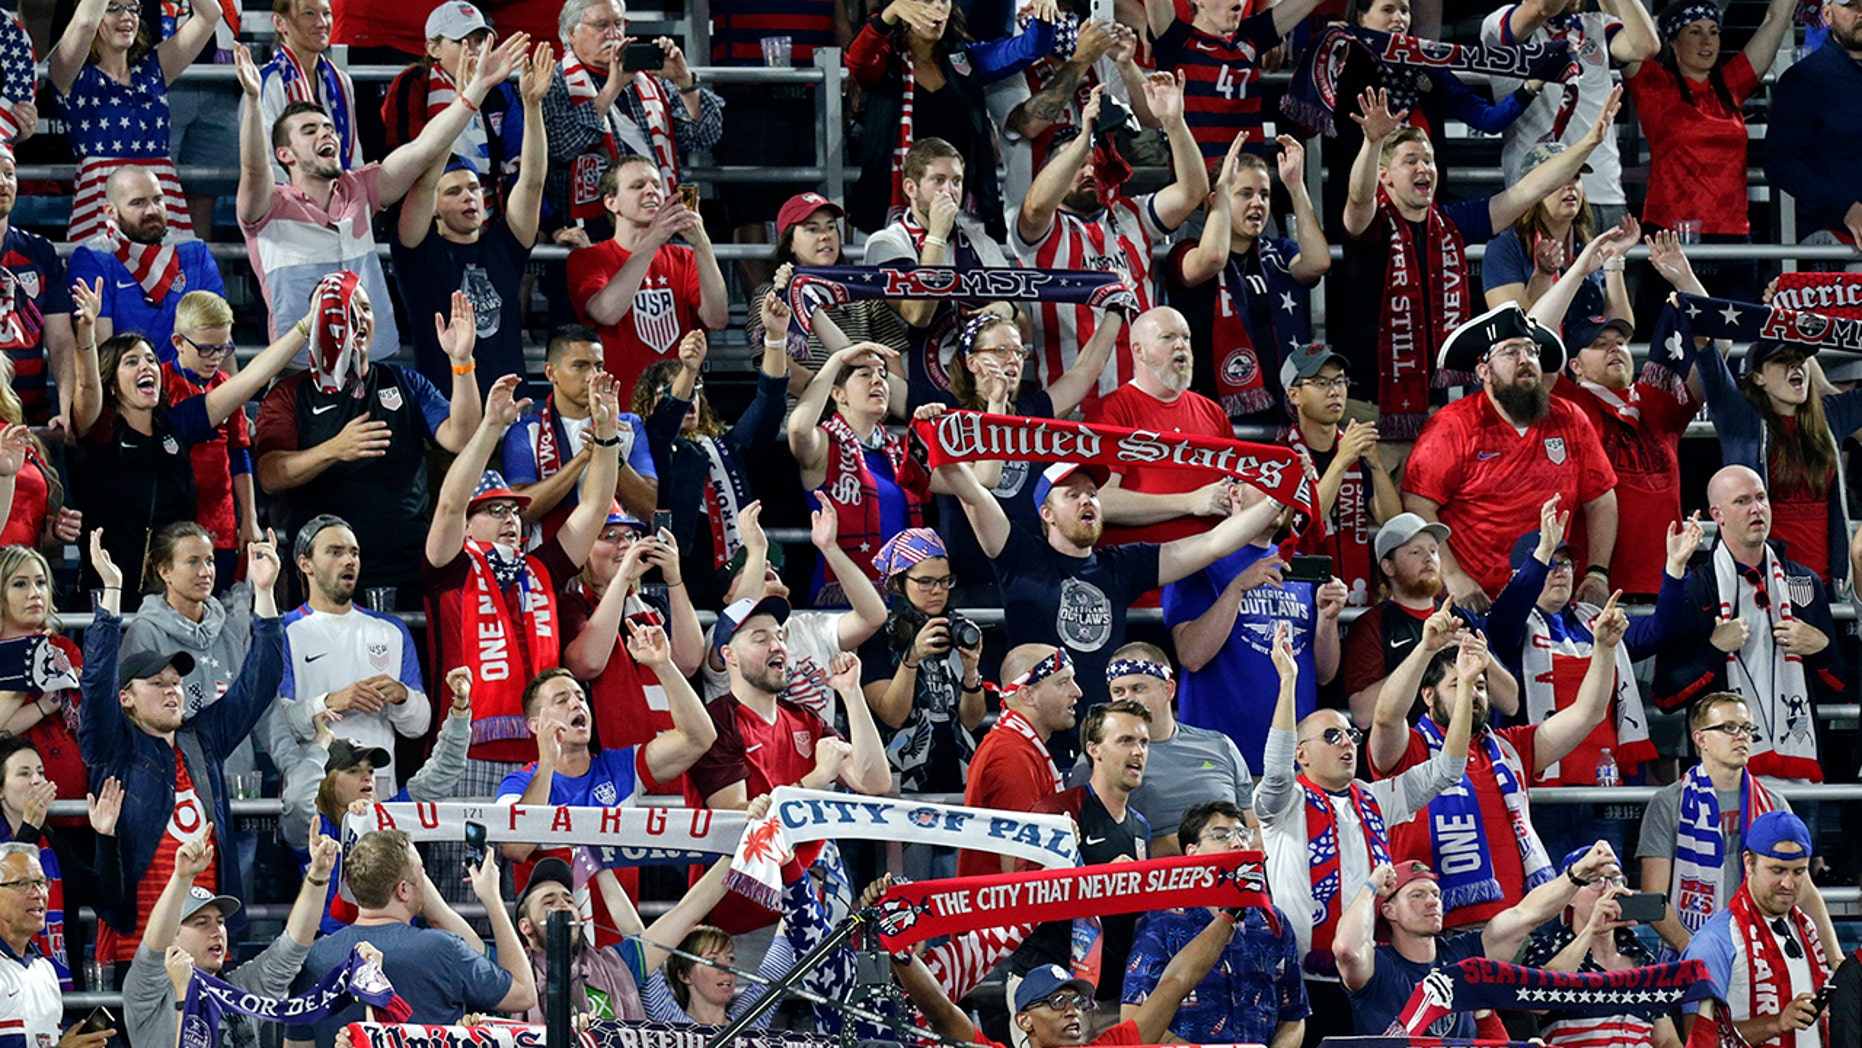 U.S. fans cheer during the second half of the team's CONCACAF Gold Cup soccer match against Guyana on Tuesday, June 18, 2019, in St. Paul, Minn. (AP Photo/Andy Clayton-King)